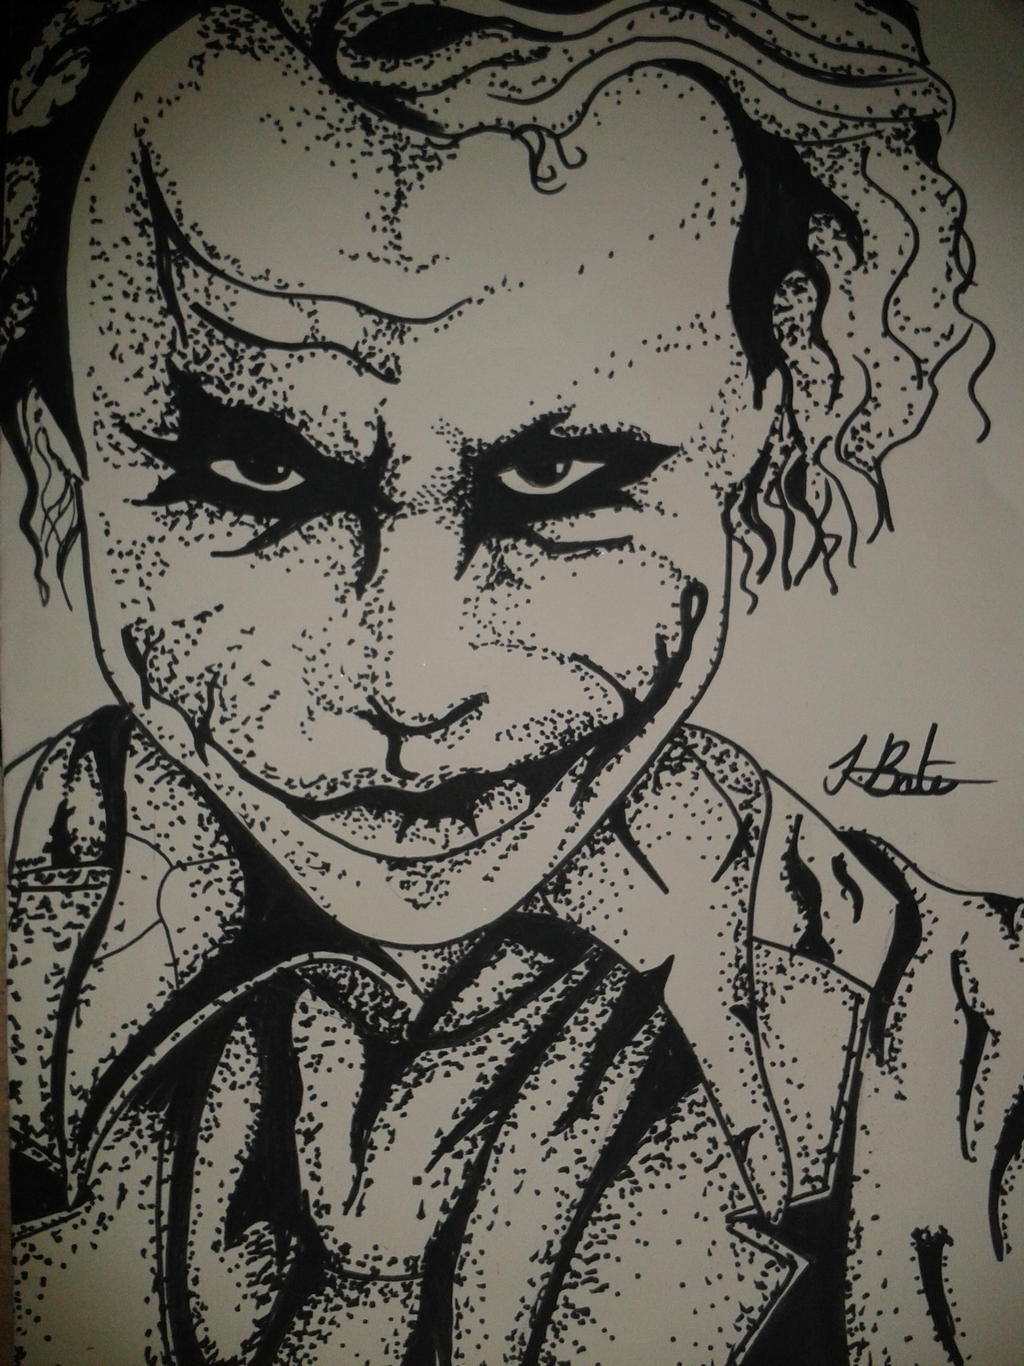 Easy Joker Drawings Easy Gangster Joker Drawings